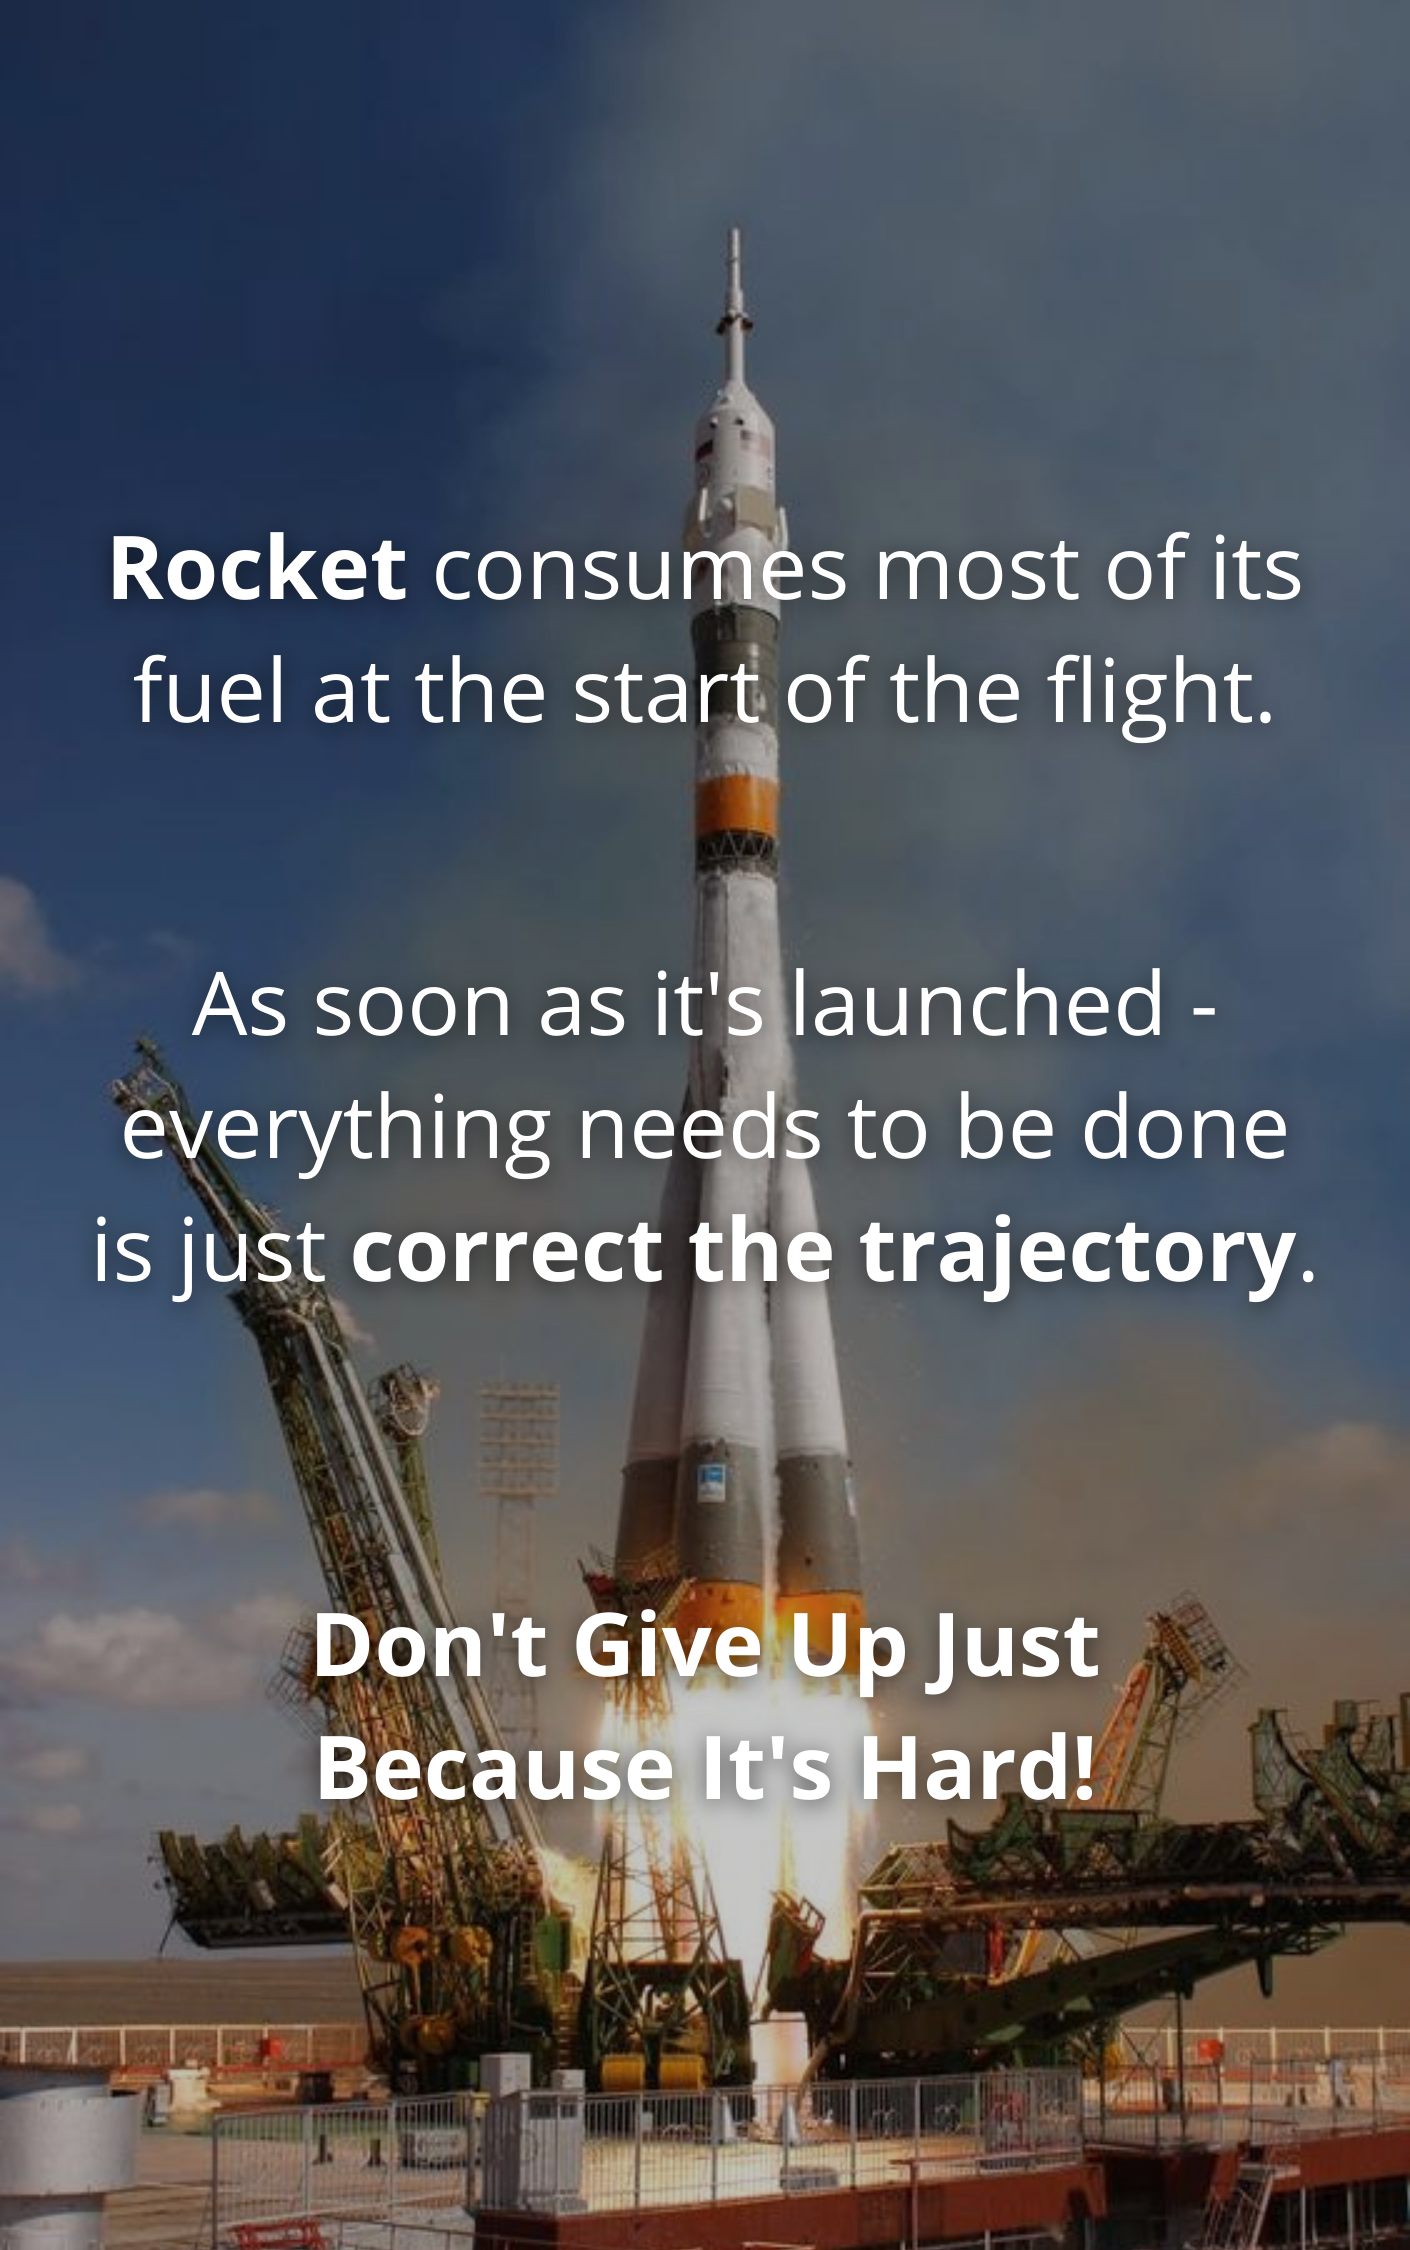 [Image] When things get hard – think about the Rocket. 🚀